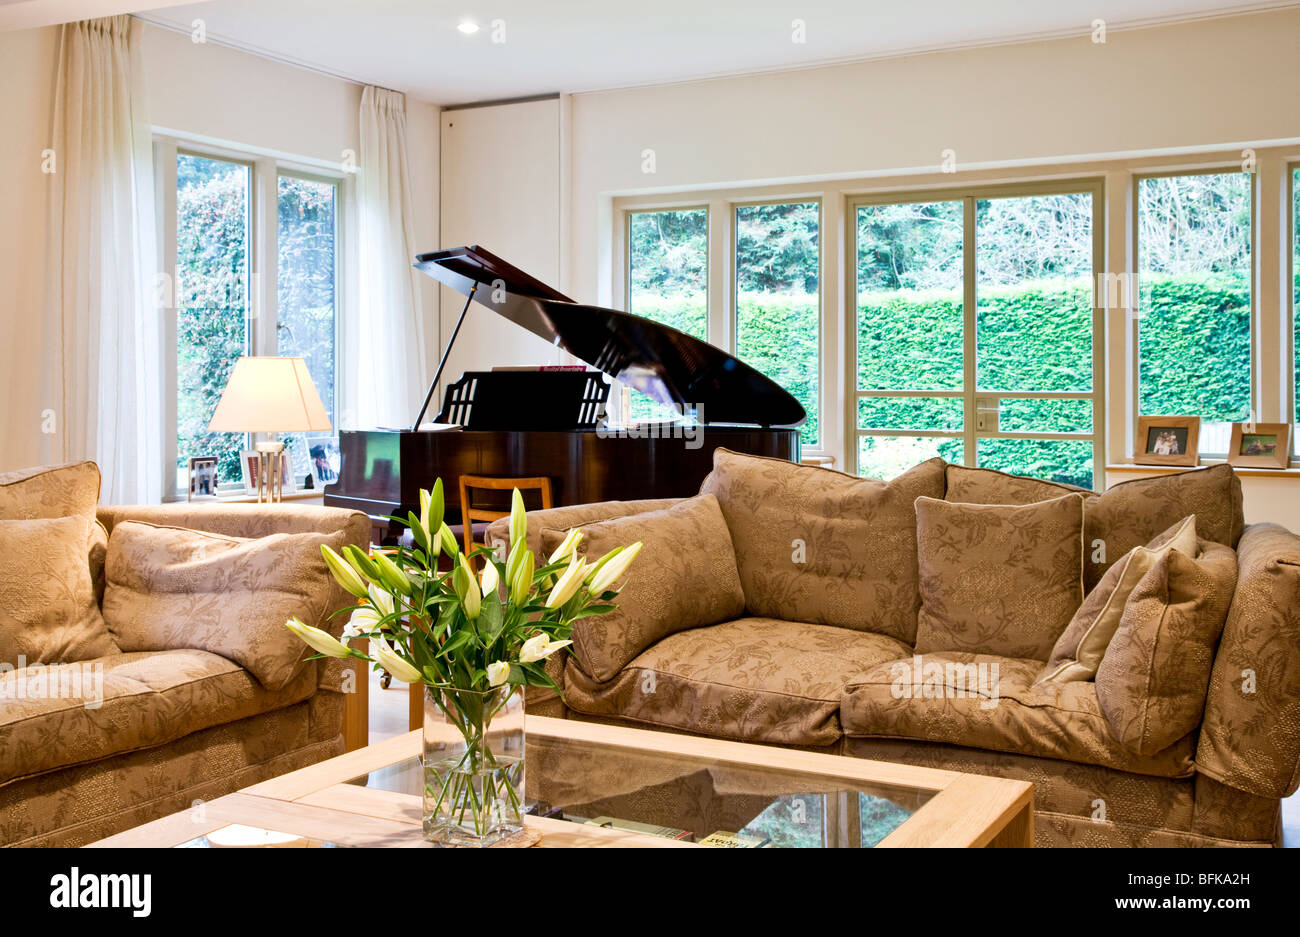 A Stylish Smart Modern Lounge Living Or Sitting Room With A Baby